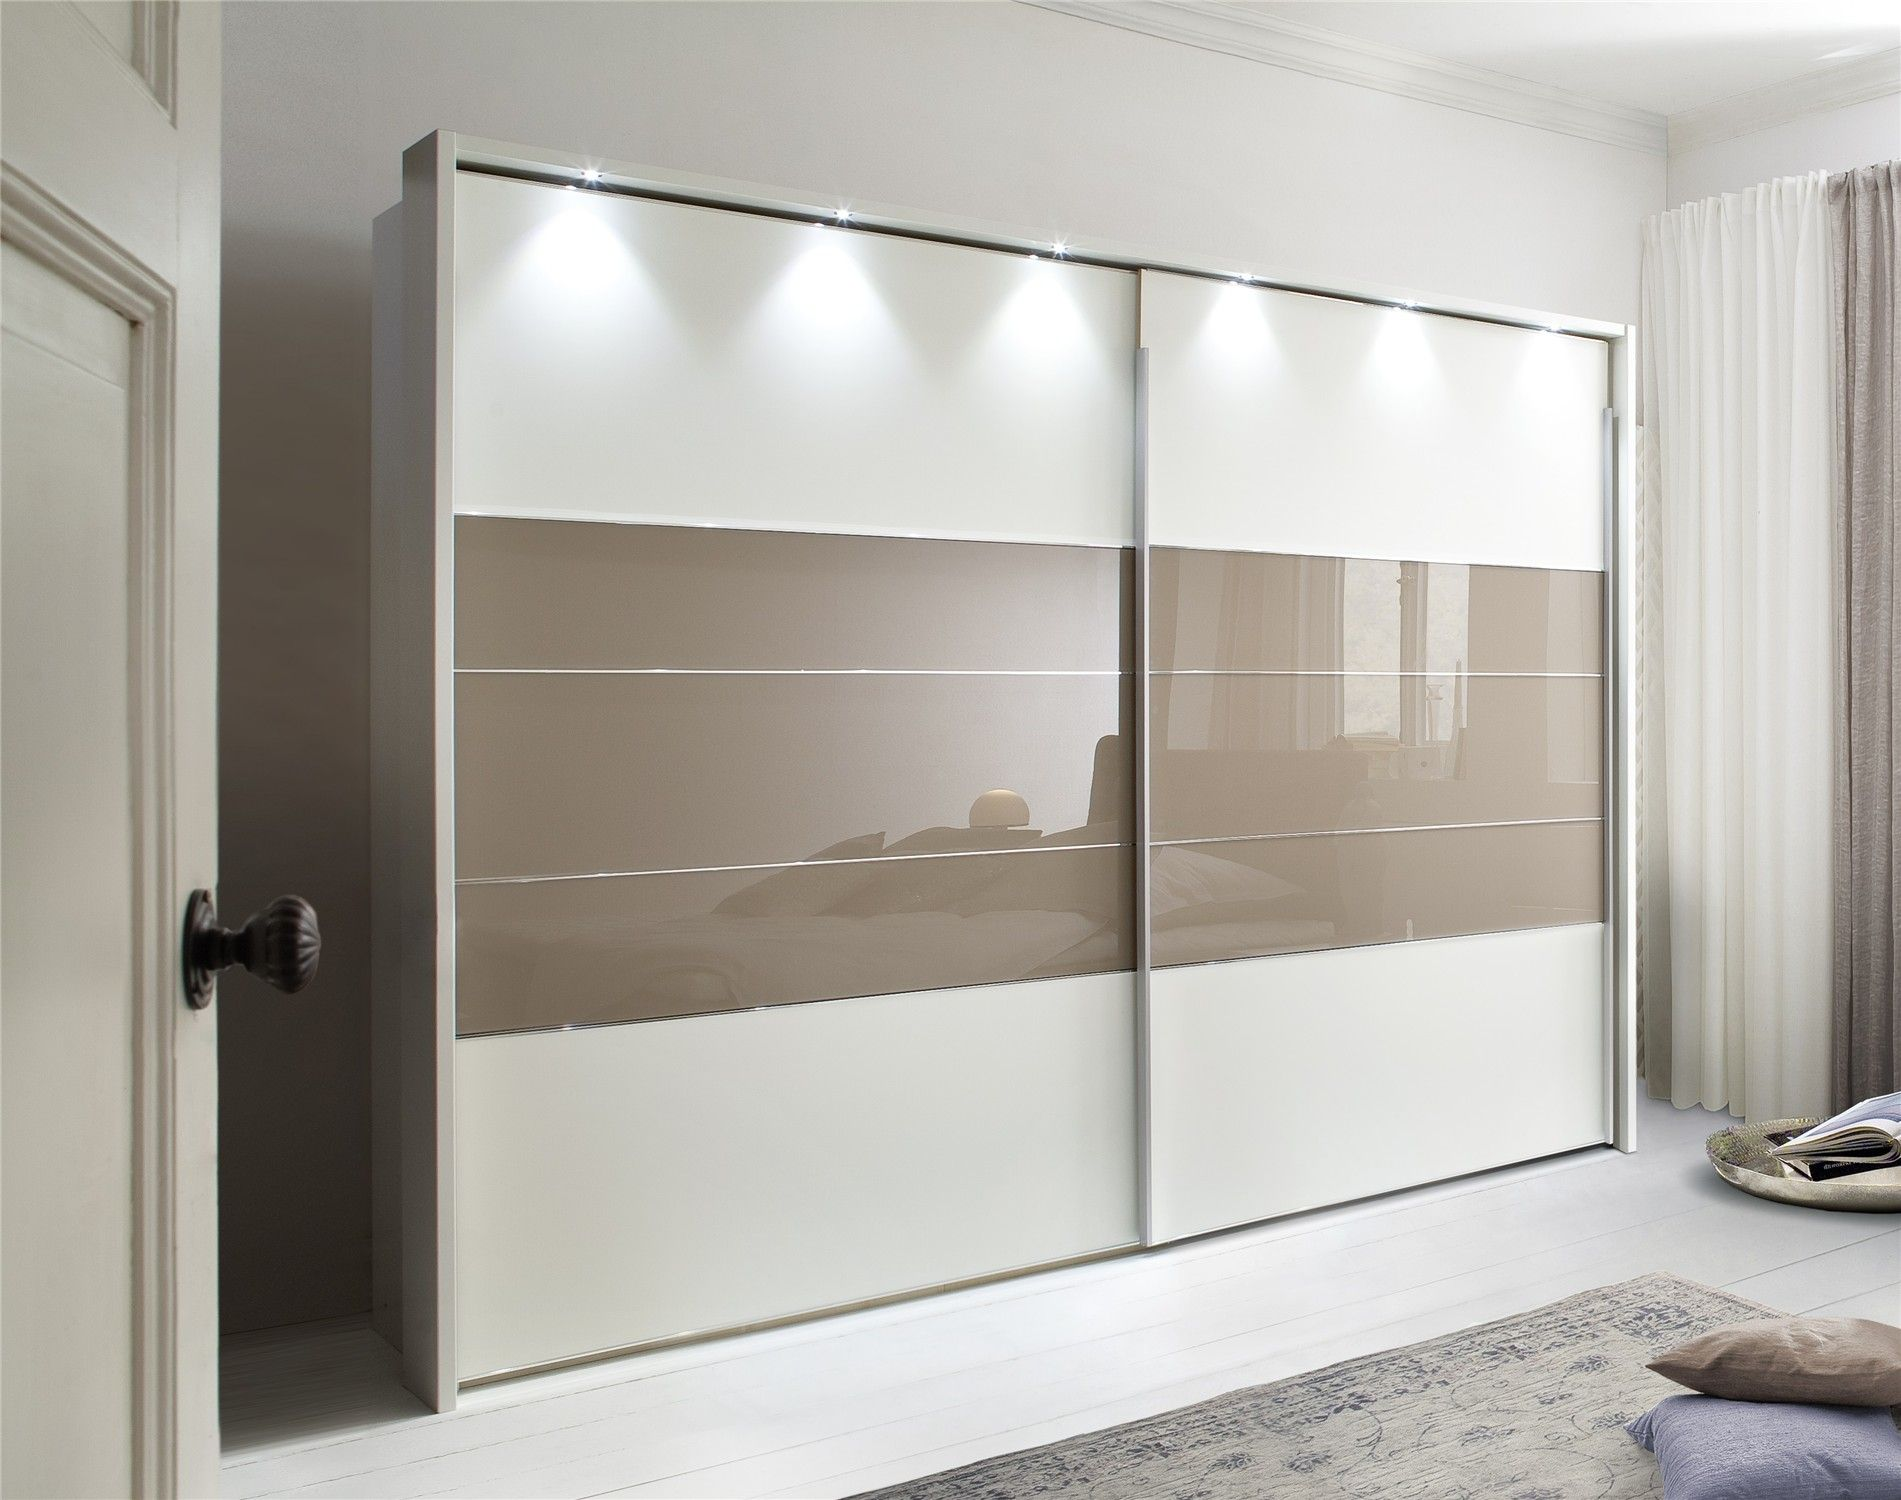 Wardrobe Mirror Sliding Doors Photo Al Christmas